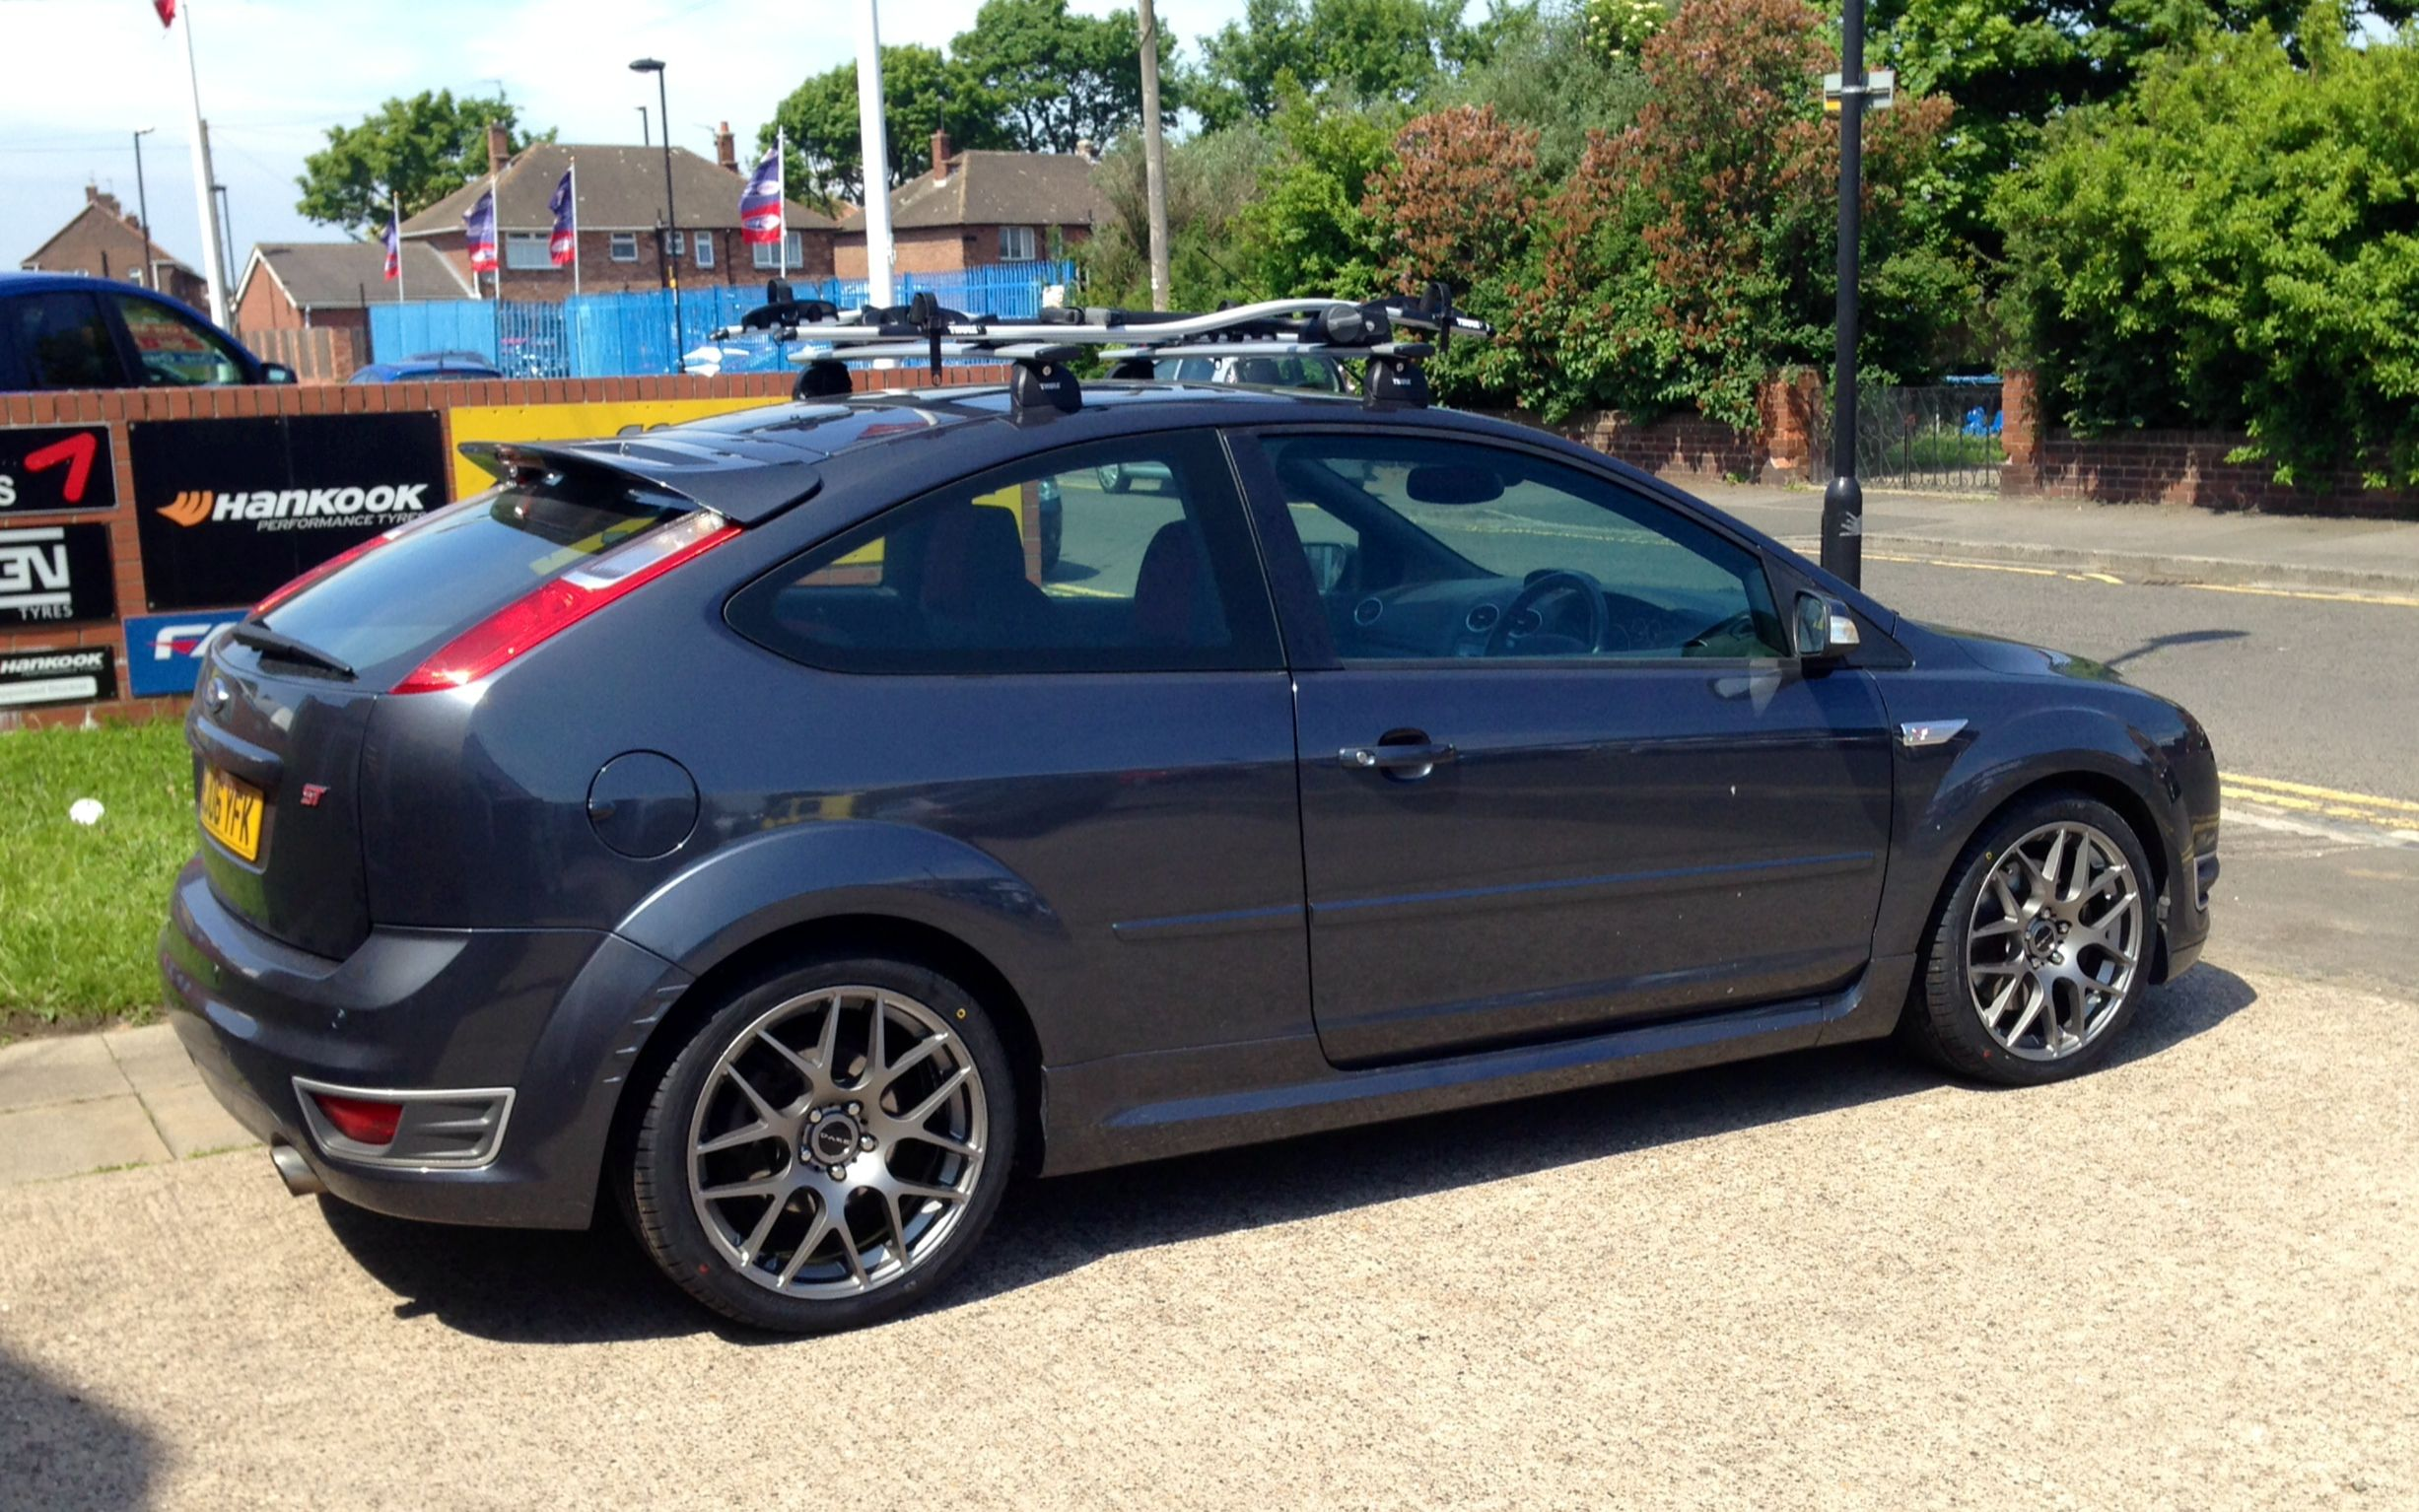 Ford focus on 18 dare x2 alloy wheels at foxhunters tyres alloys www